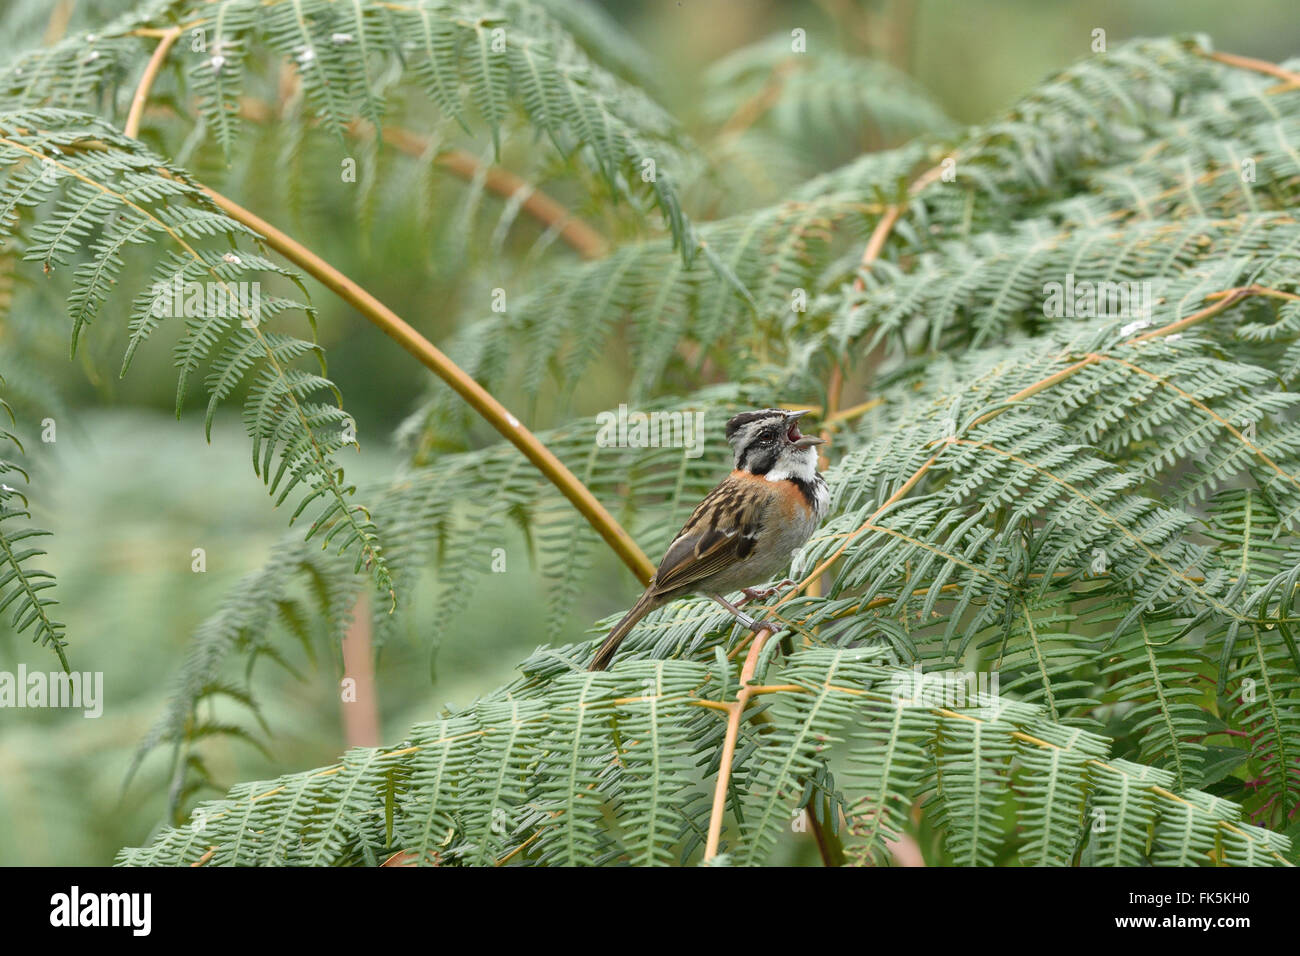 A ringed Rufous-collared Sparrow perched on ferns, singing. Stock Photo